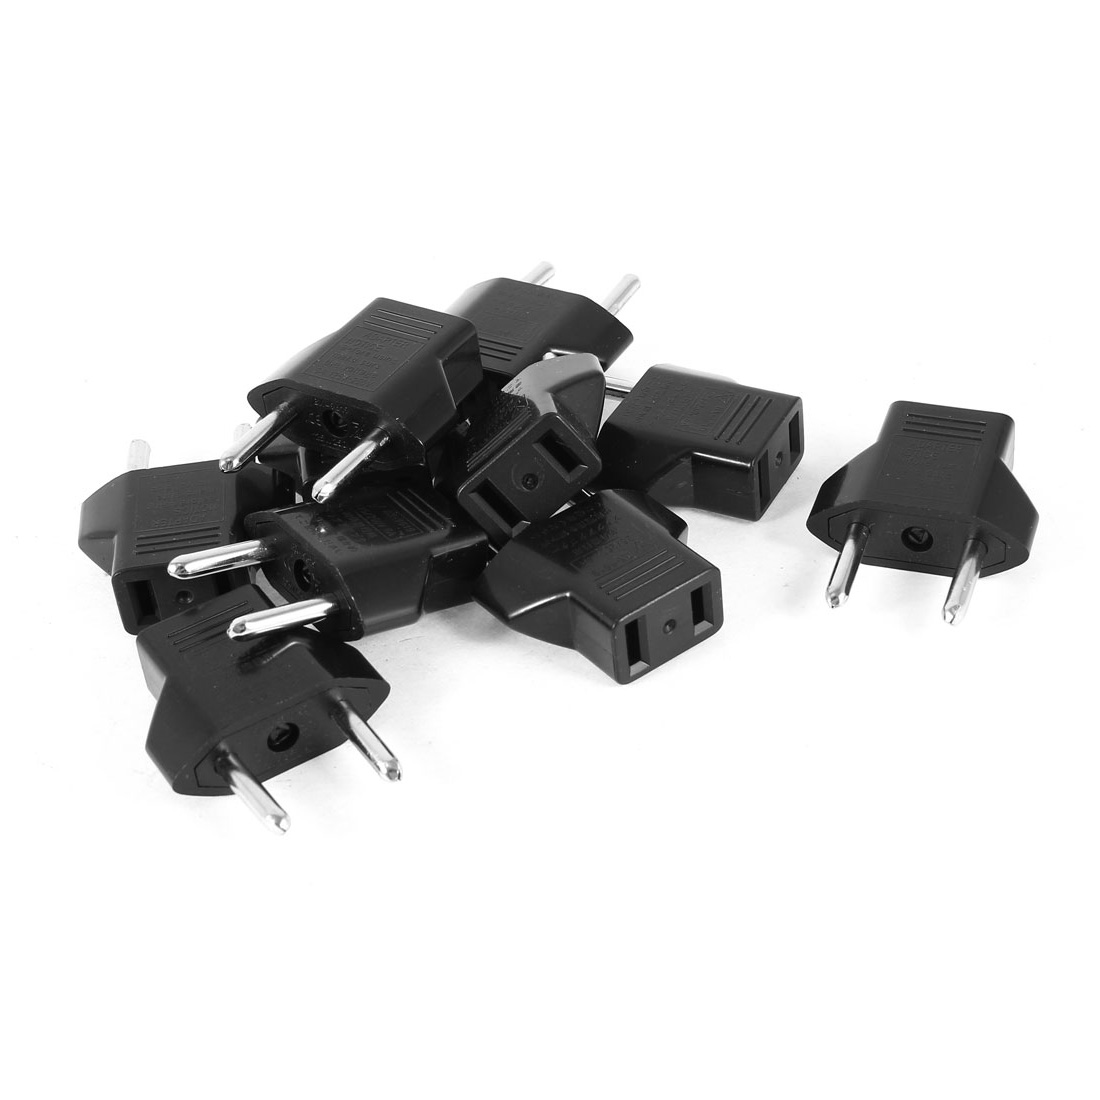 AC 125V/250V 6A EU Plug Male to US Plug Female Socket Power Adapter Black 10 Pcs